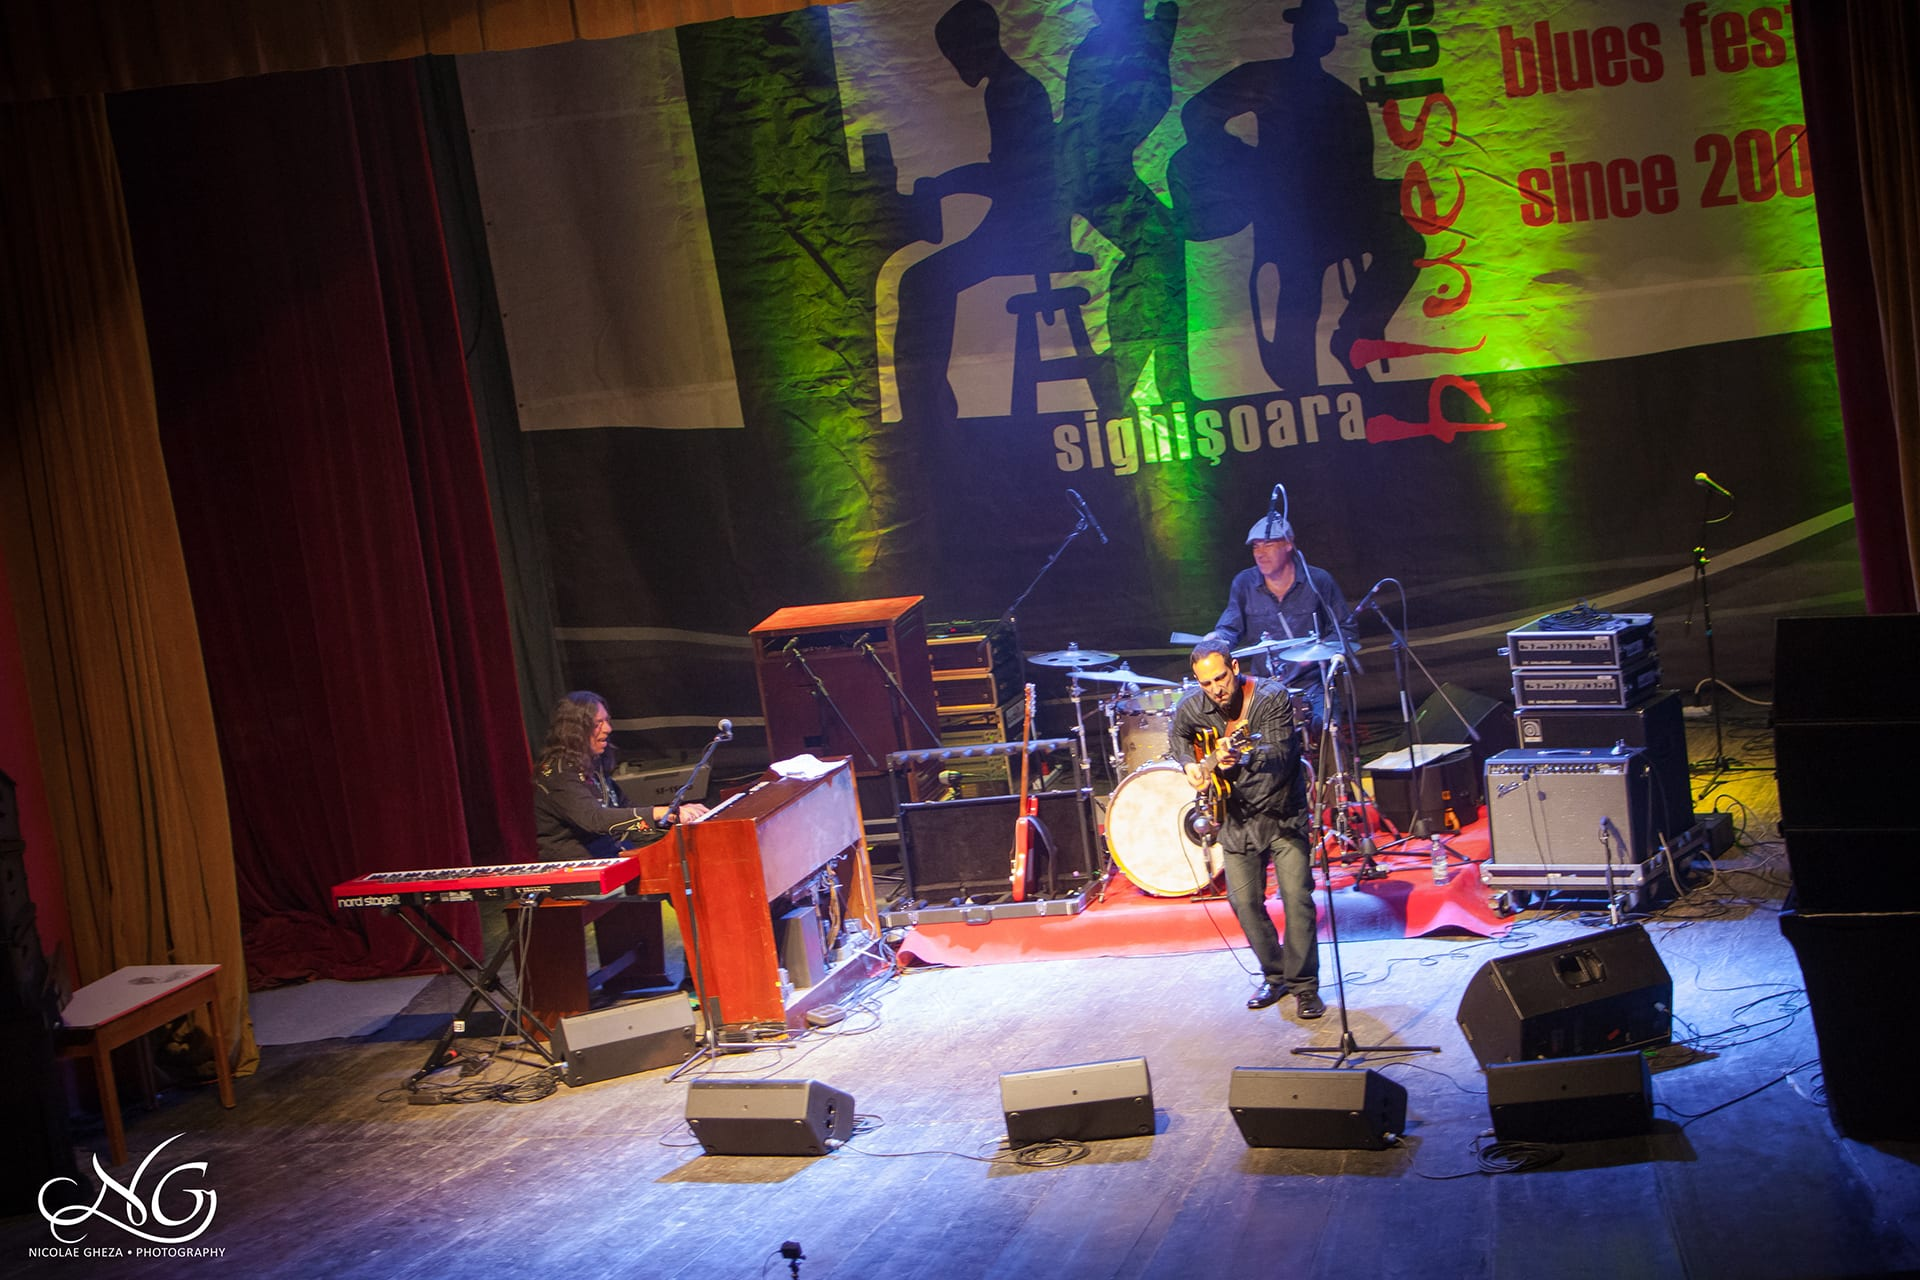 Sighișoara Blues Festival 2015